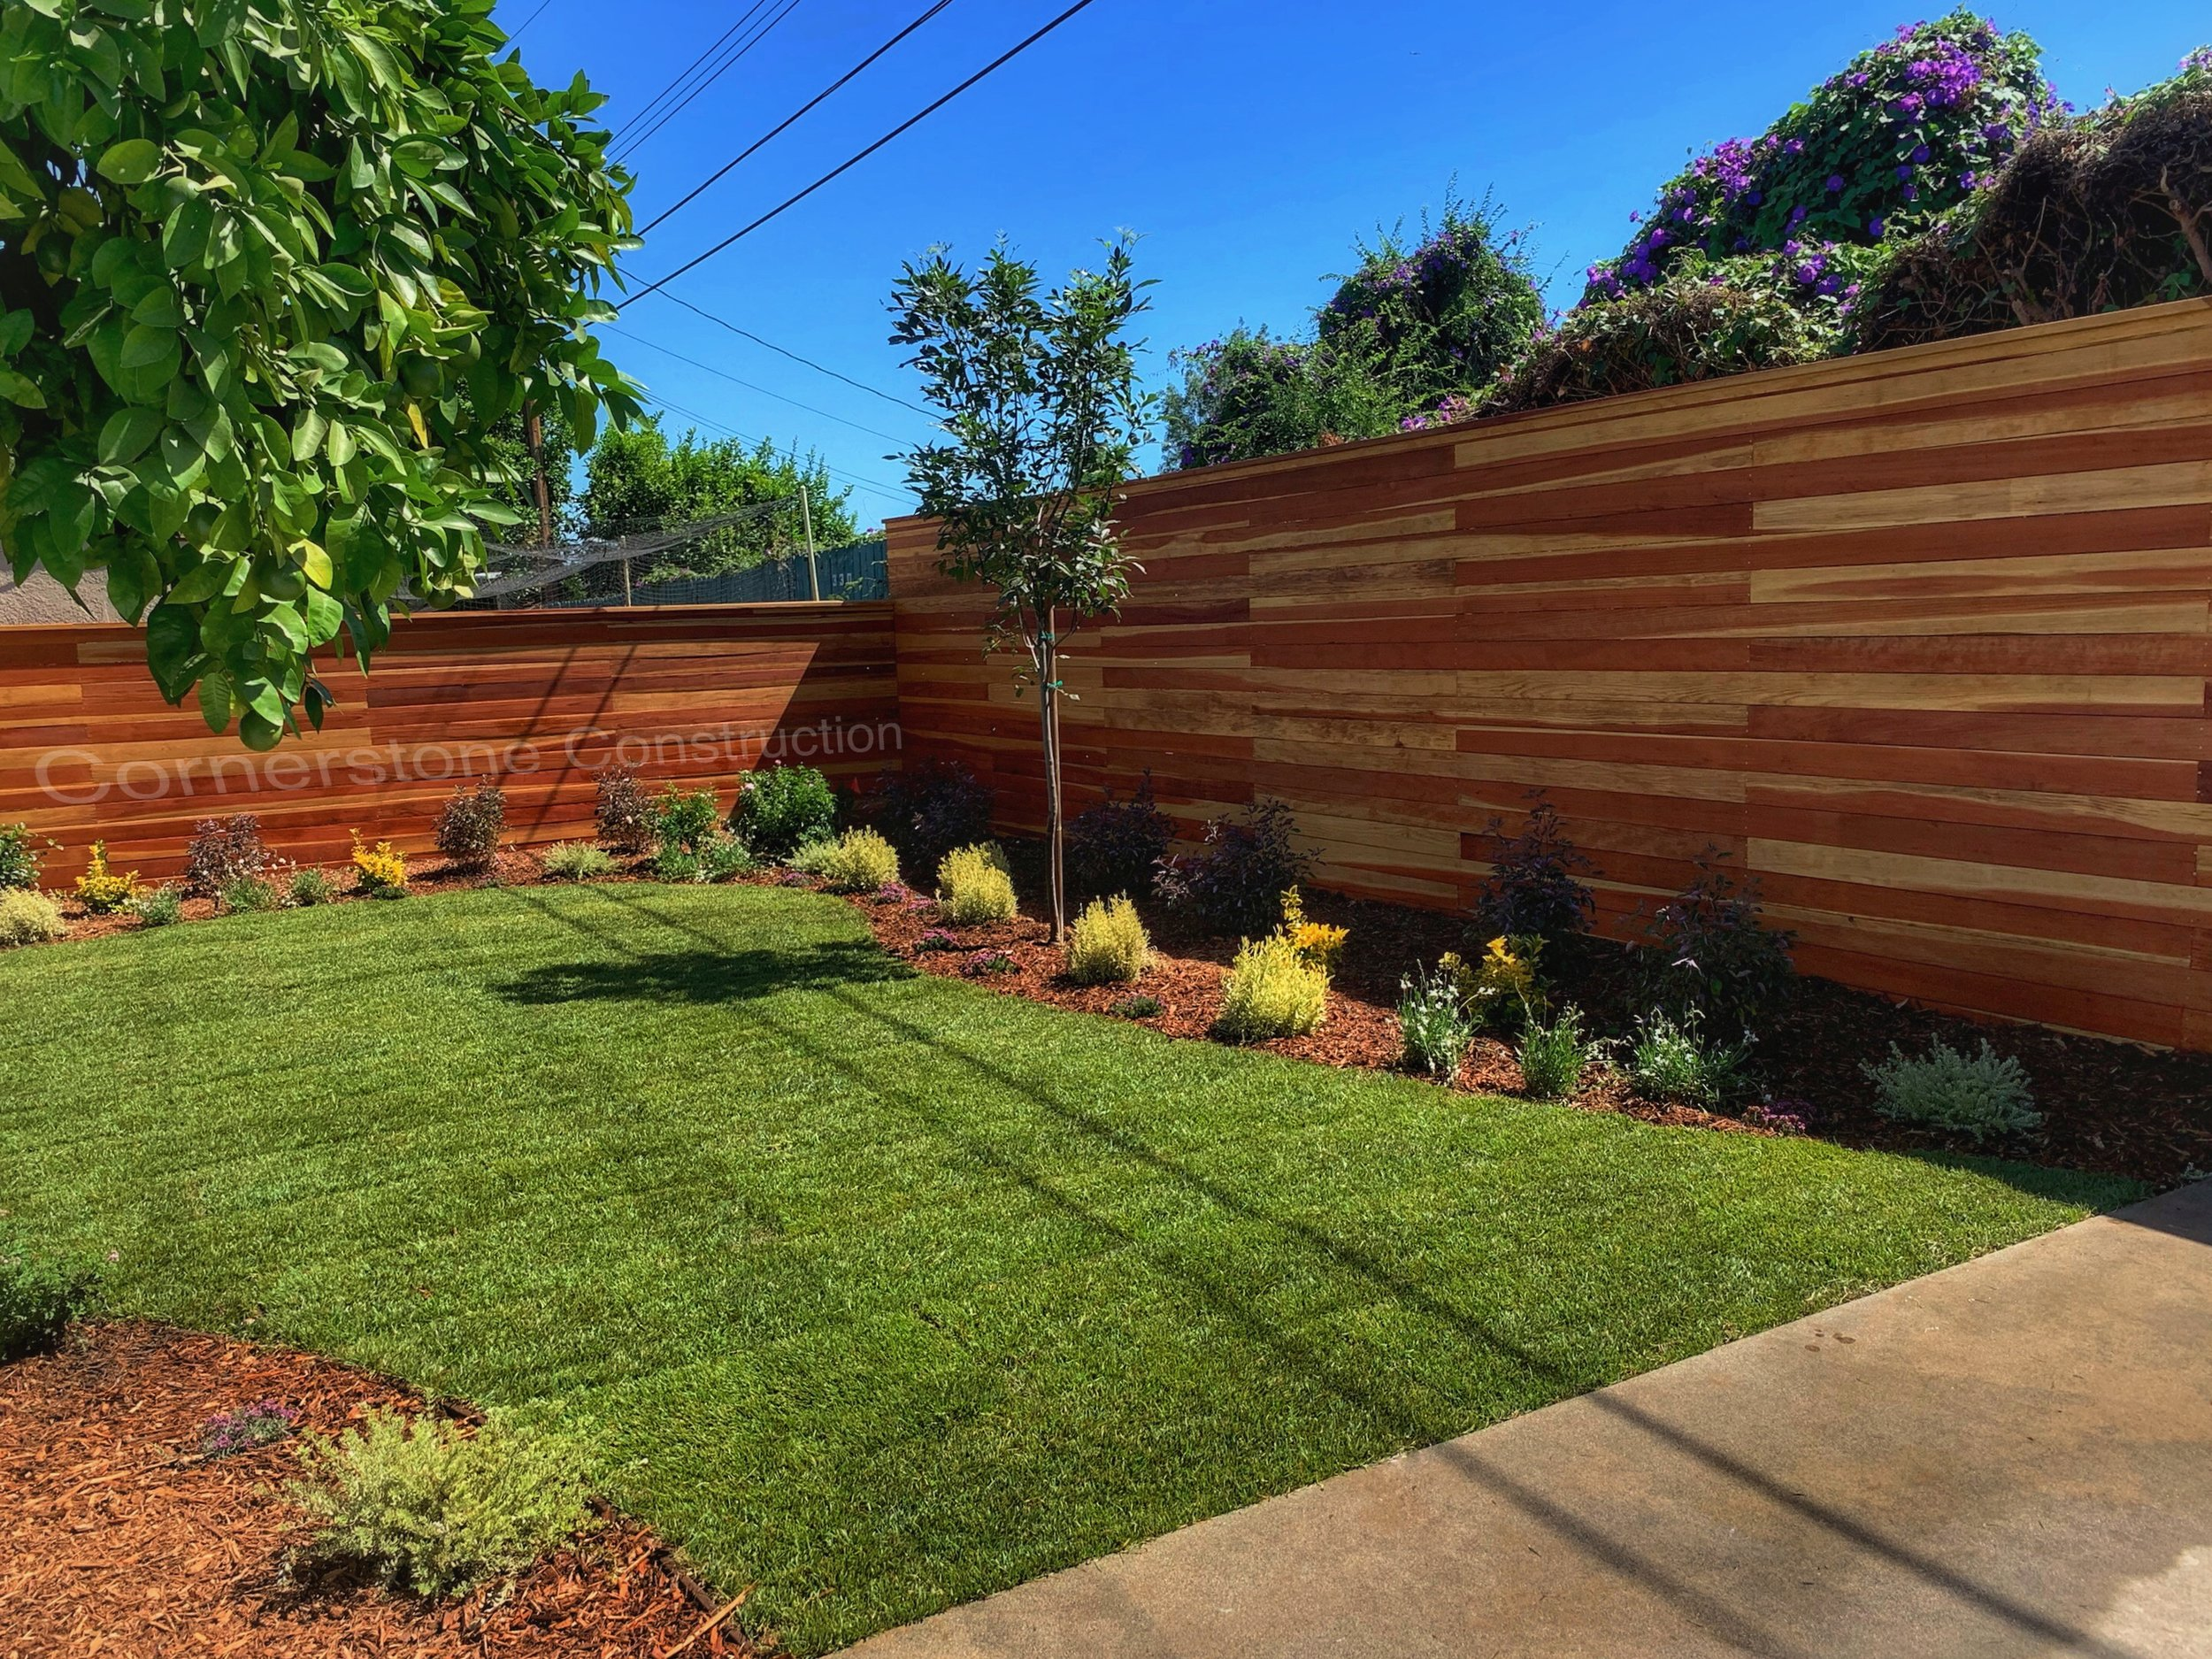 artificial turf and wooden fencing